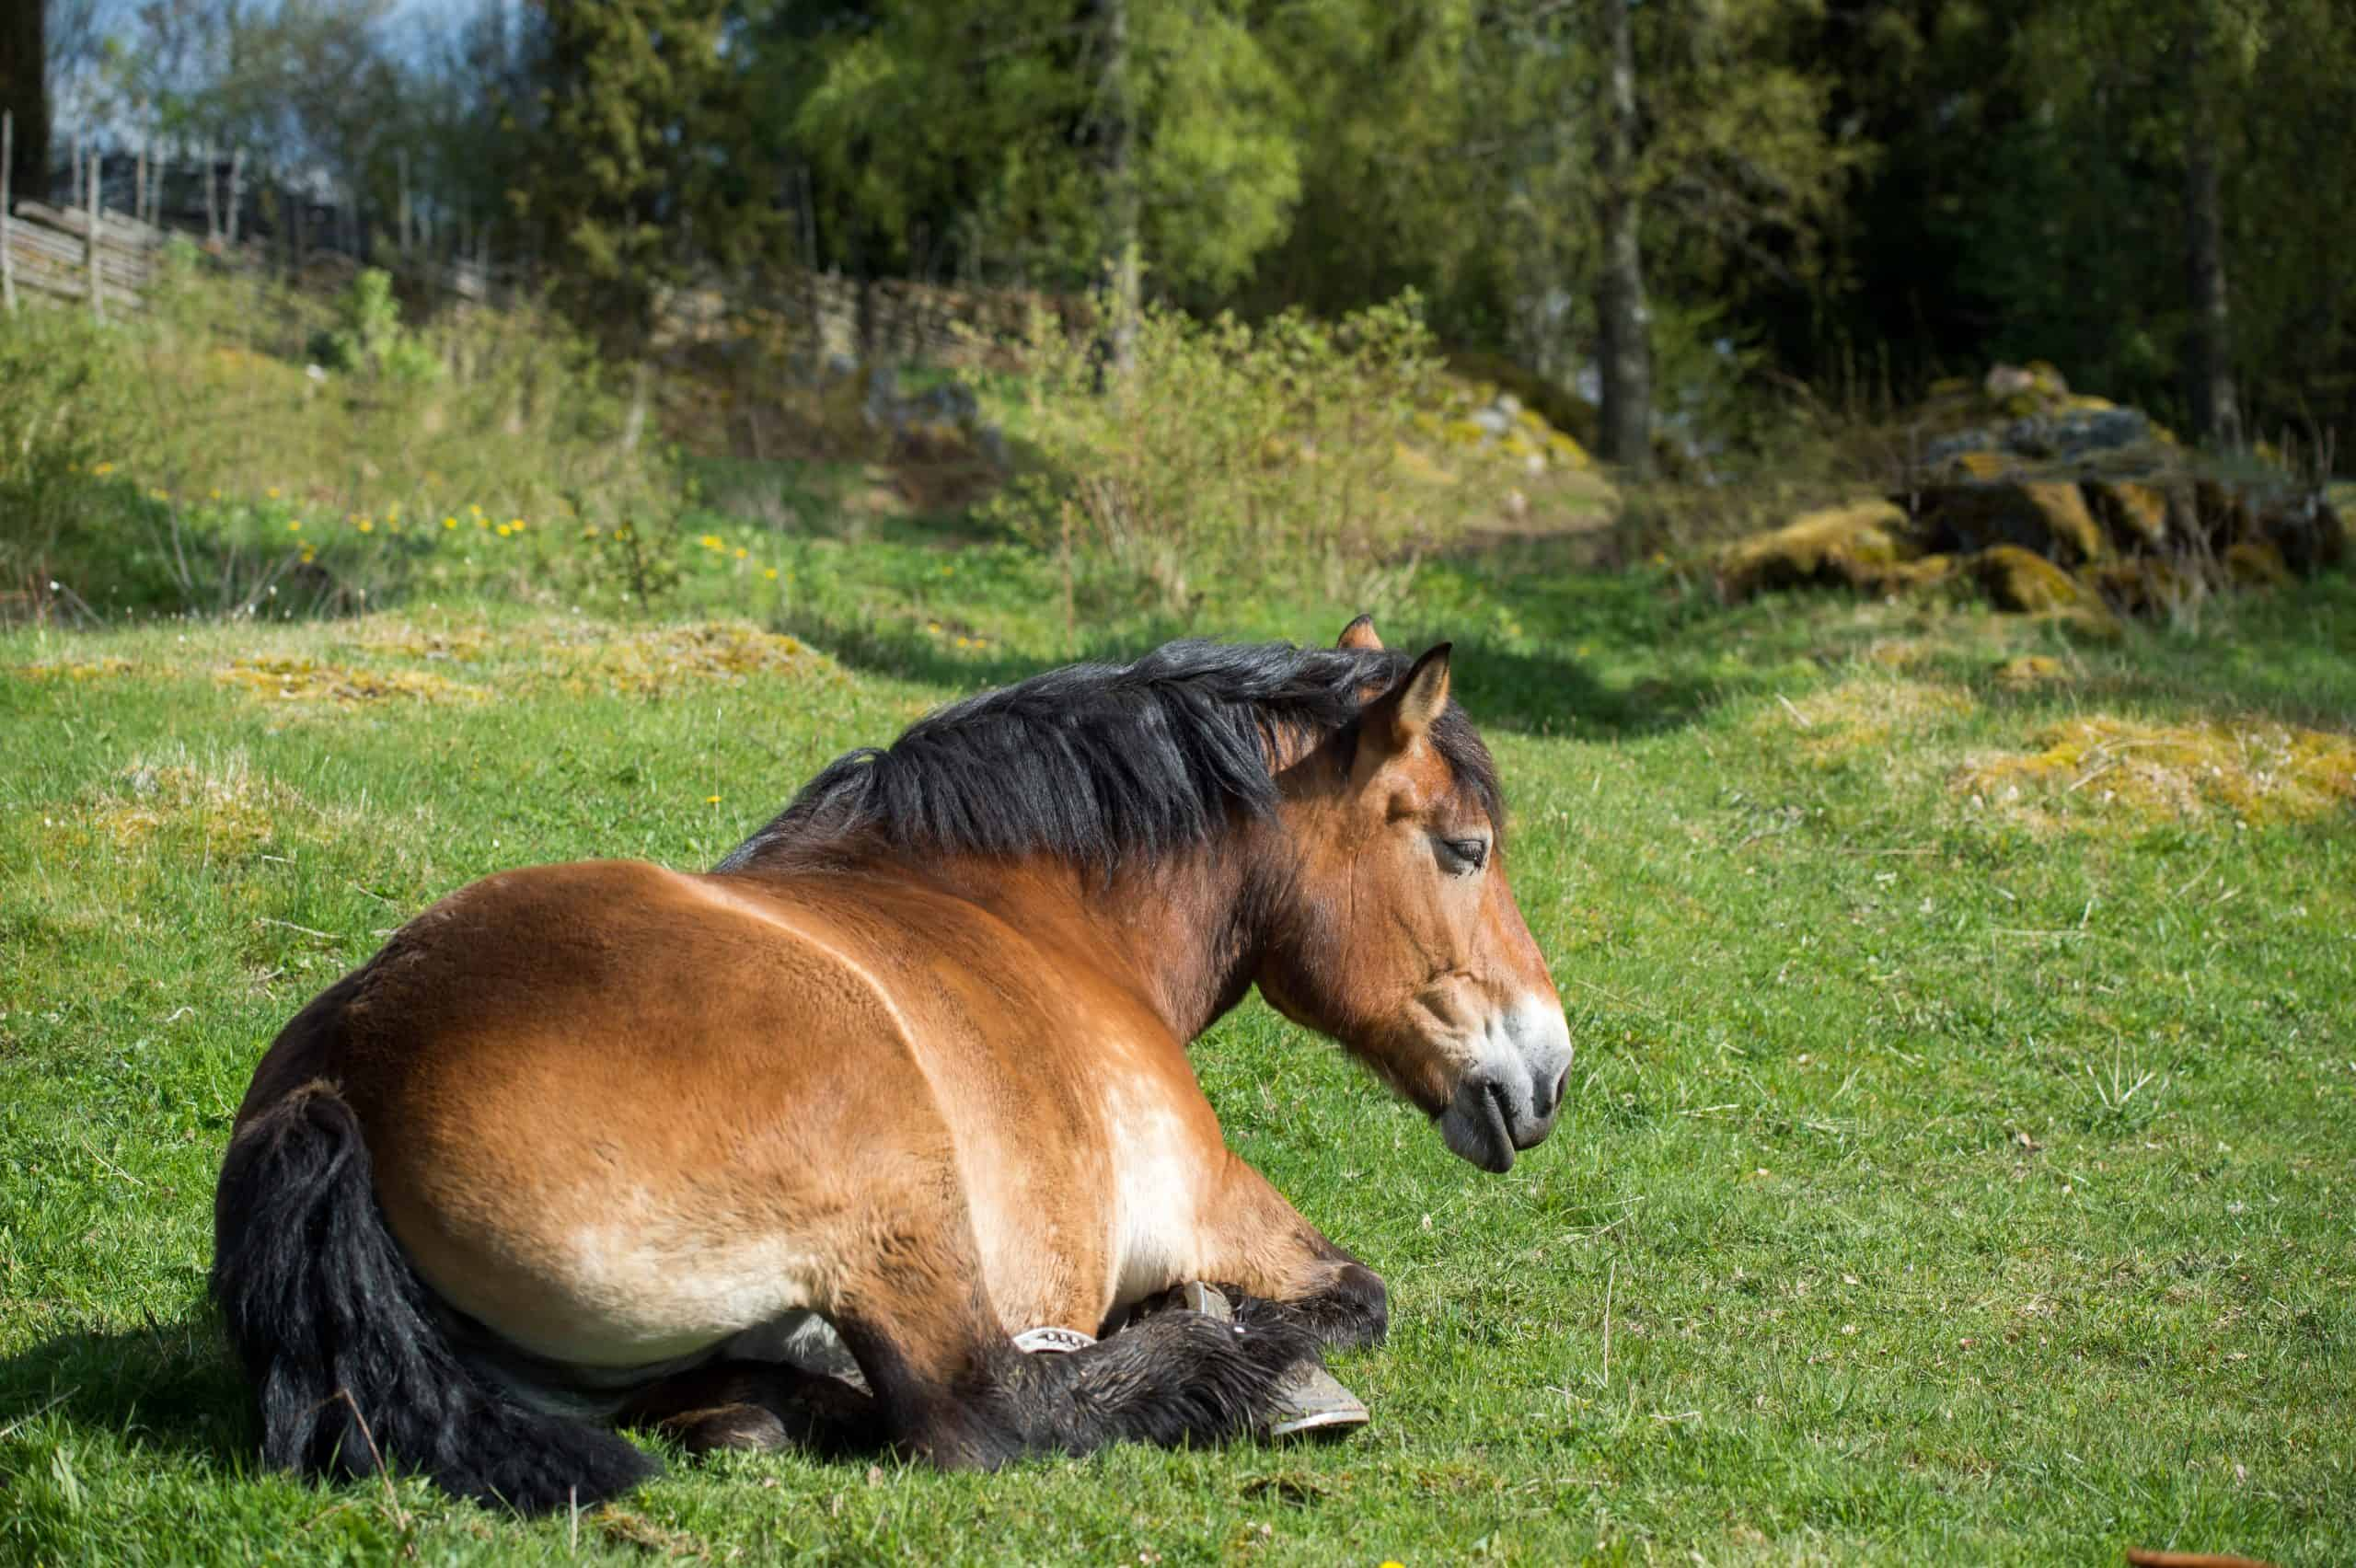 Ardennes horse resting on a sunny day in early May in the Swedish countryside of Smaland